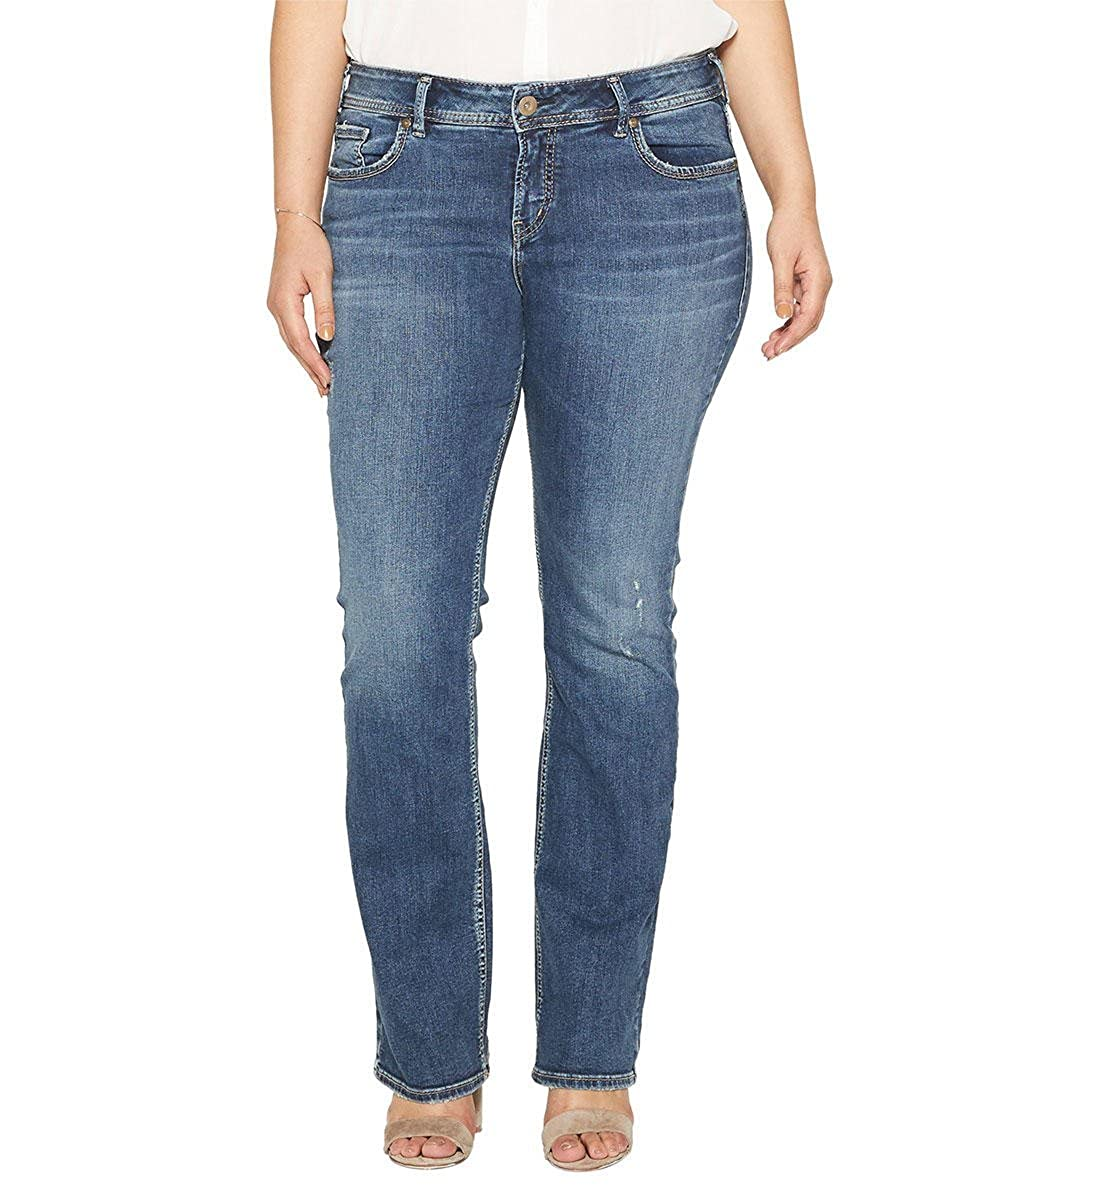 e3f17007301 ... 2000257749 Silver Jeans Co. Womens Plus Size Elyse Relaxed Fit Mid Rise  Slim Bootcut Jeans 2000257749 ...